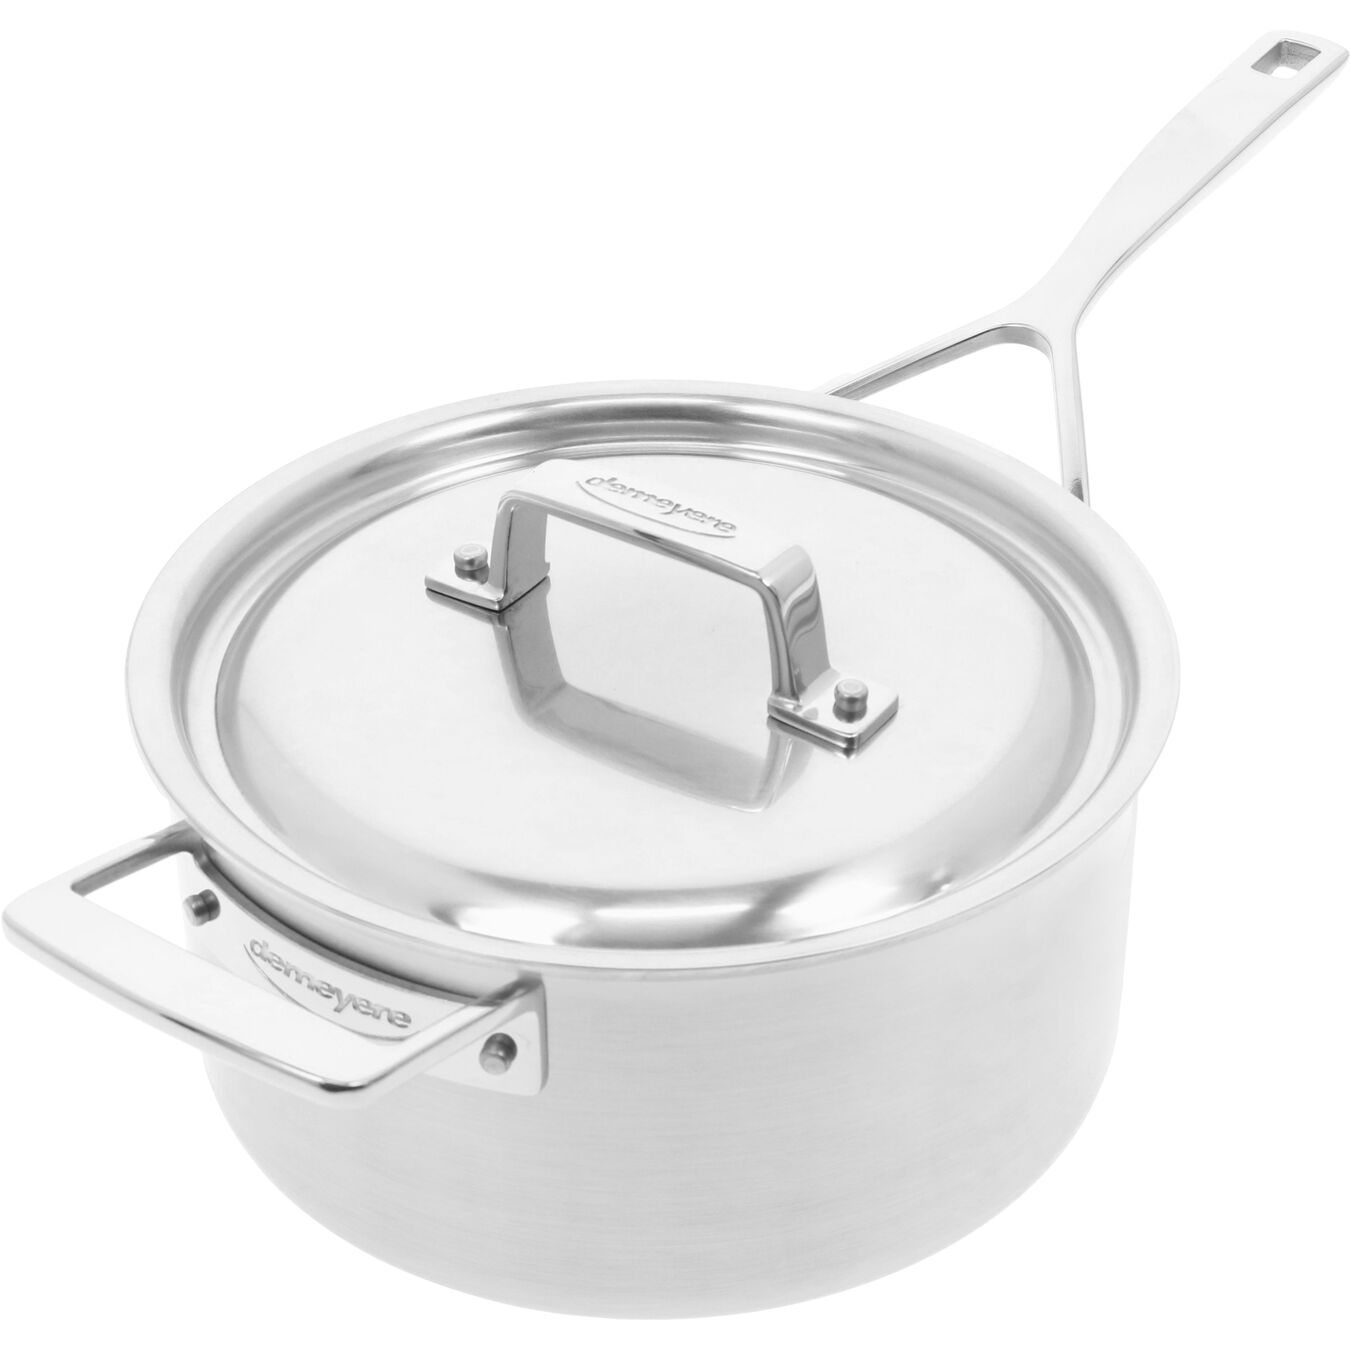 3.8 l round sauce pan with lid 4QT, silver,,large 5